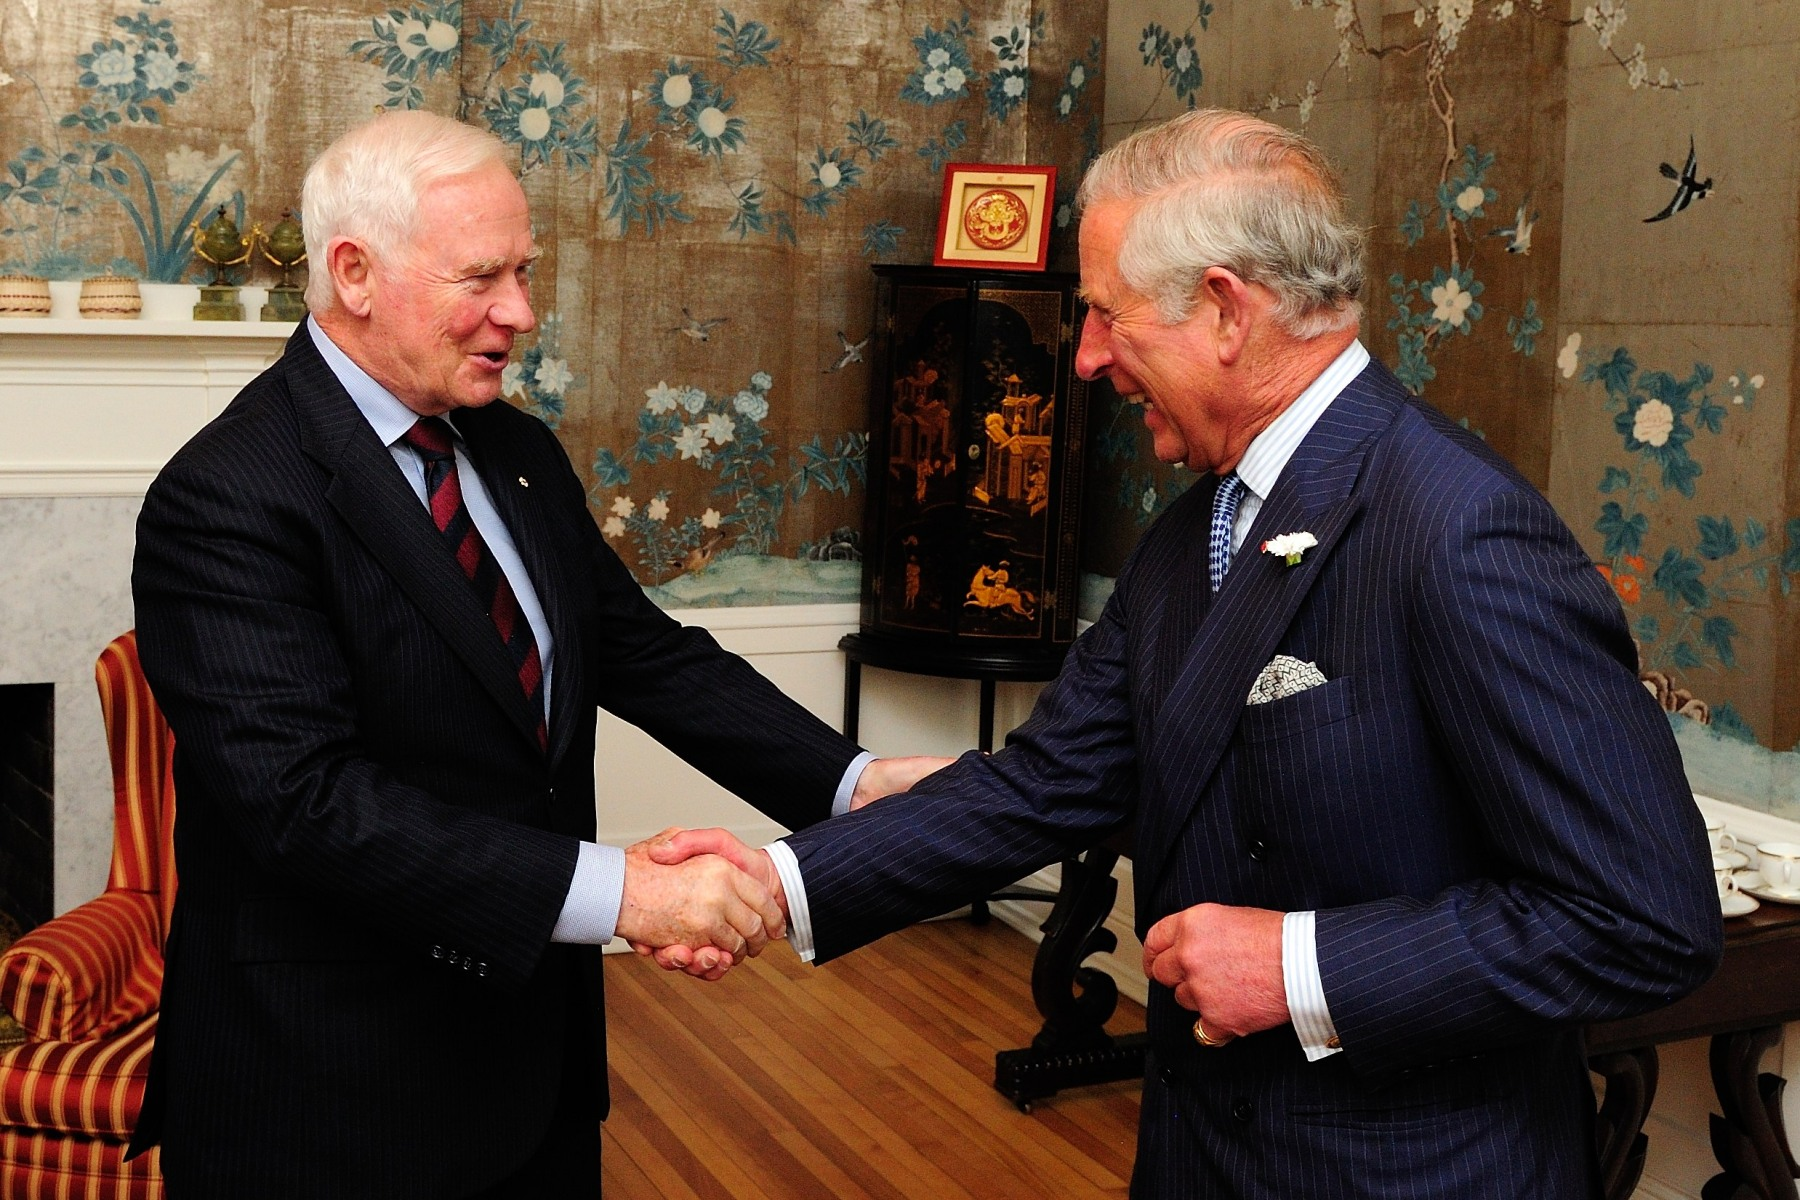 On the evening of May 18, 2014, the Governor General had the chance to meet with His Royal Highness The Prince of Wales at Government House, in Halifax.